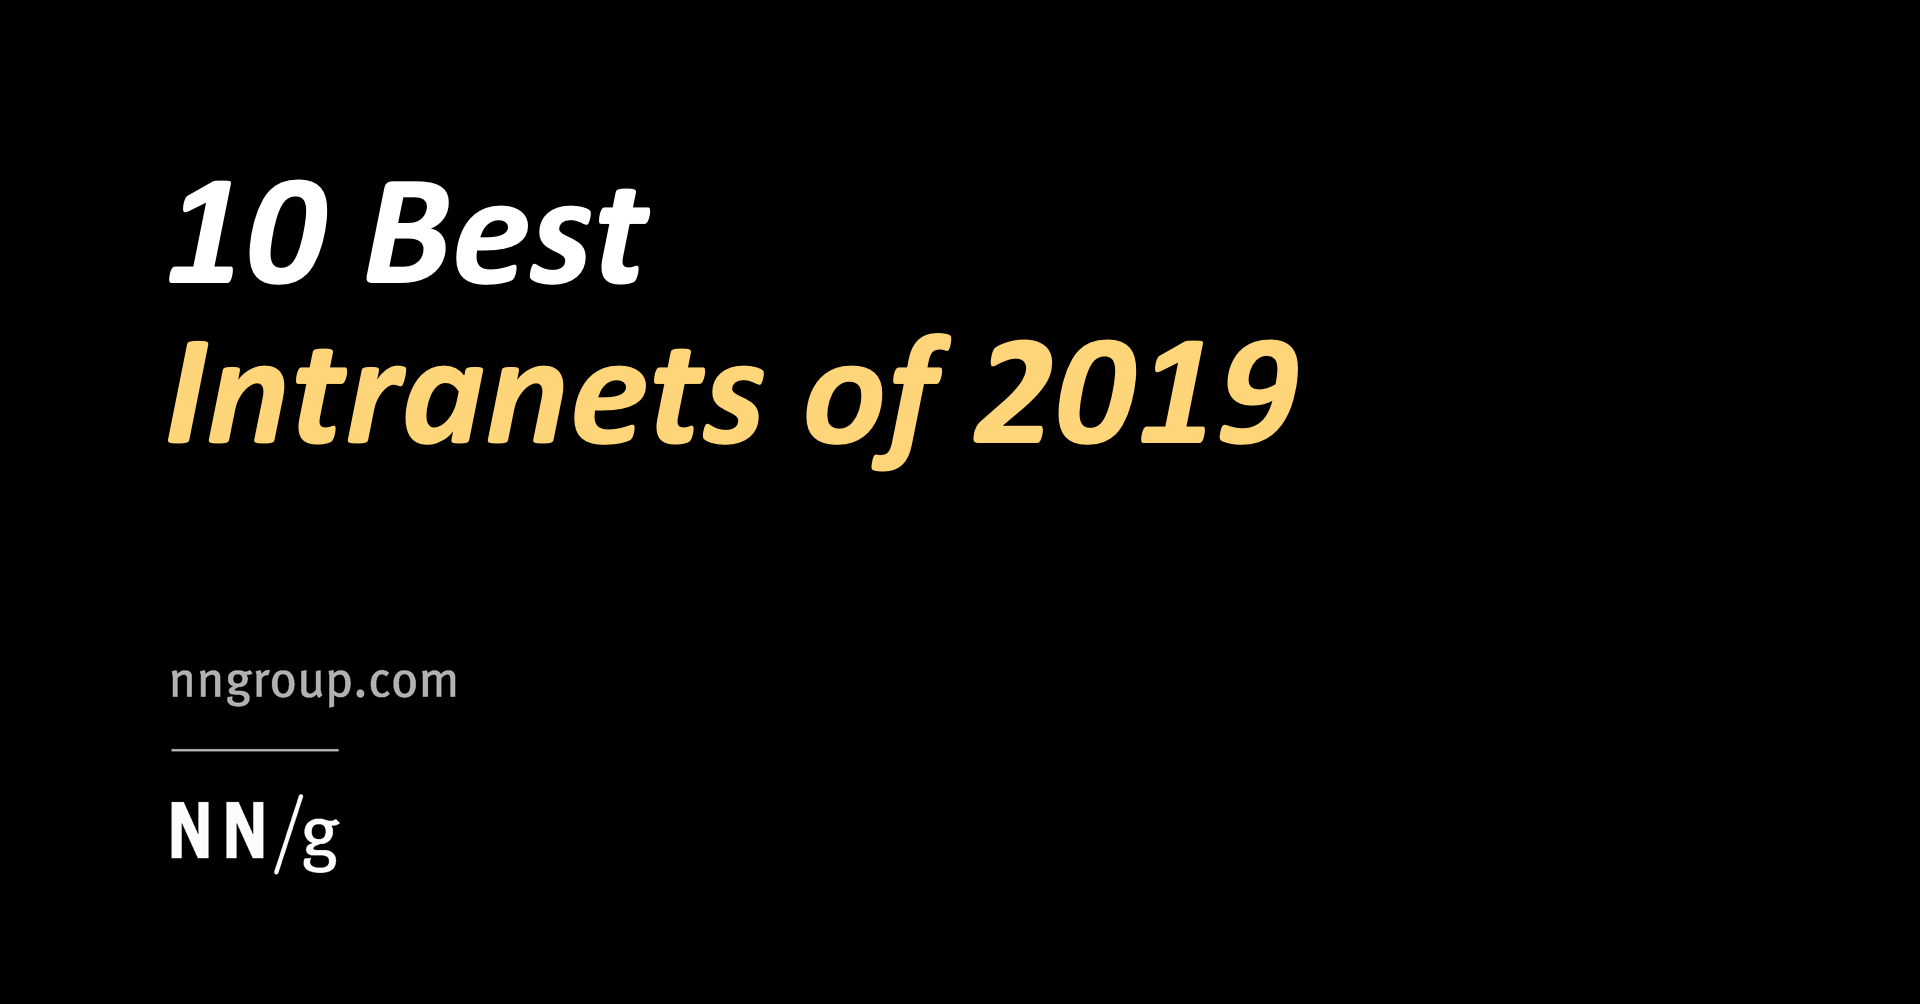 10 Best Intranets of 2019